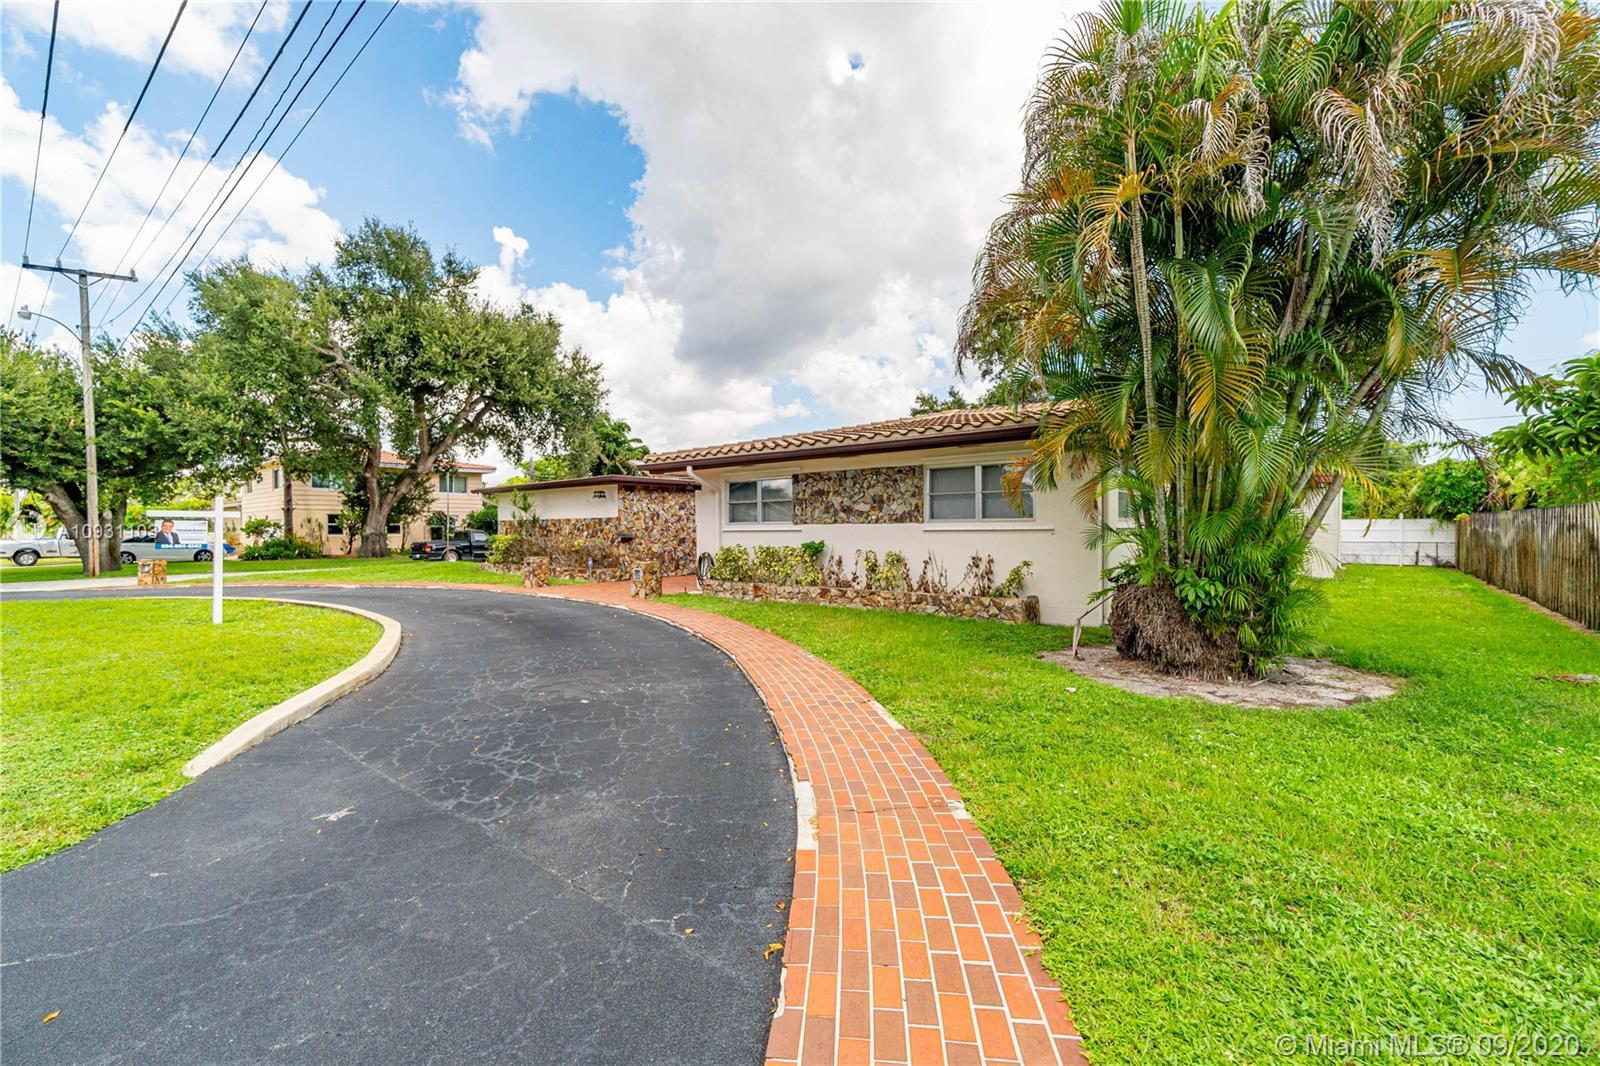 OPEN HOUSE! THIS SATURDAY 09/26  FROM 12:00PM TO 3:00PM LOOKING FOR SPACE? HERE IS THE HOUSE YOU ARE